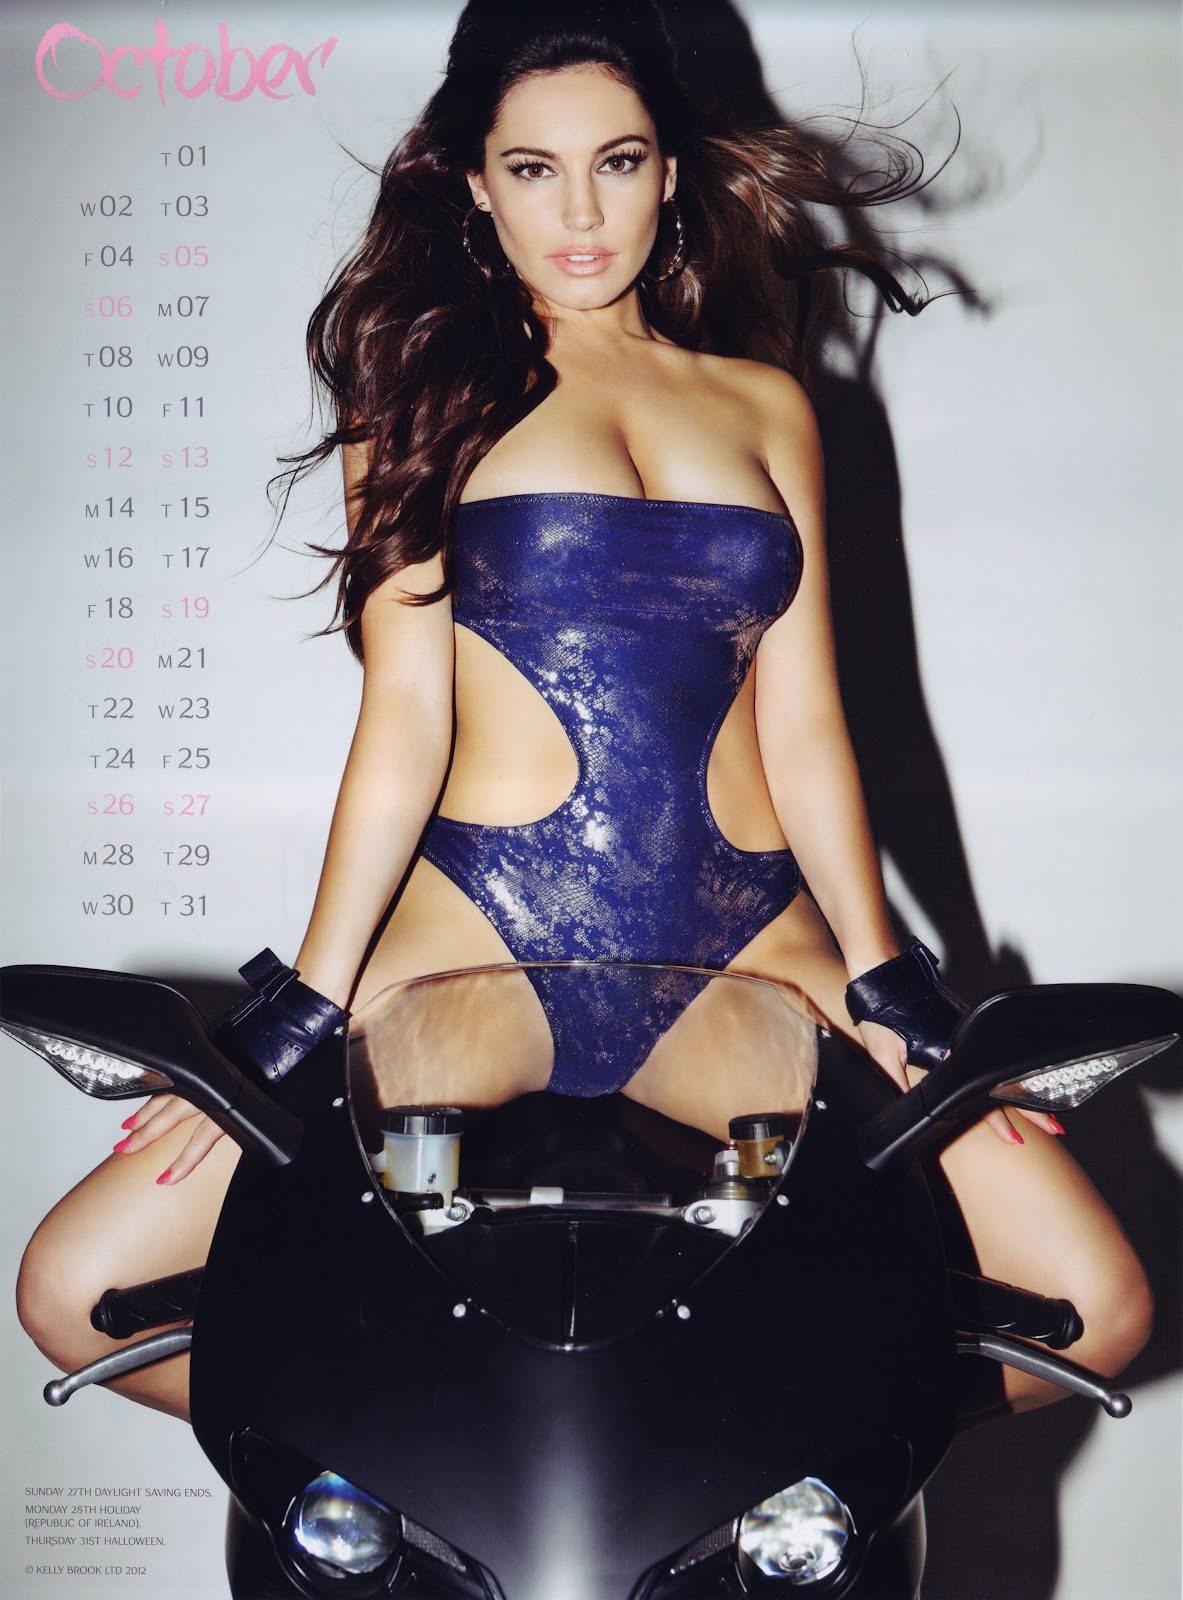 http://4.bp.blogspot.com/-ObaJMth9iF4/UF0Wq-0ntQI/AAAAAAAAOWQ/40lThNkVEew/s1600/Kelly+Brook+Official+2013+Calendar++-11.jpg